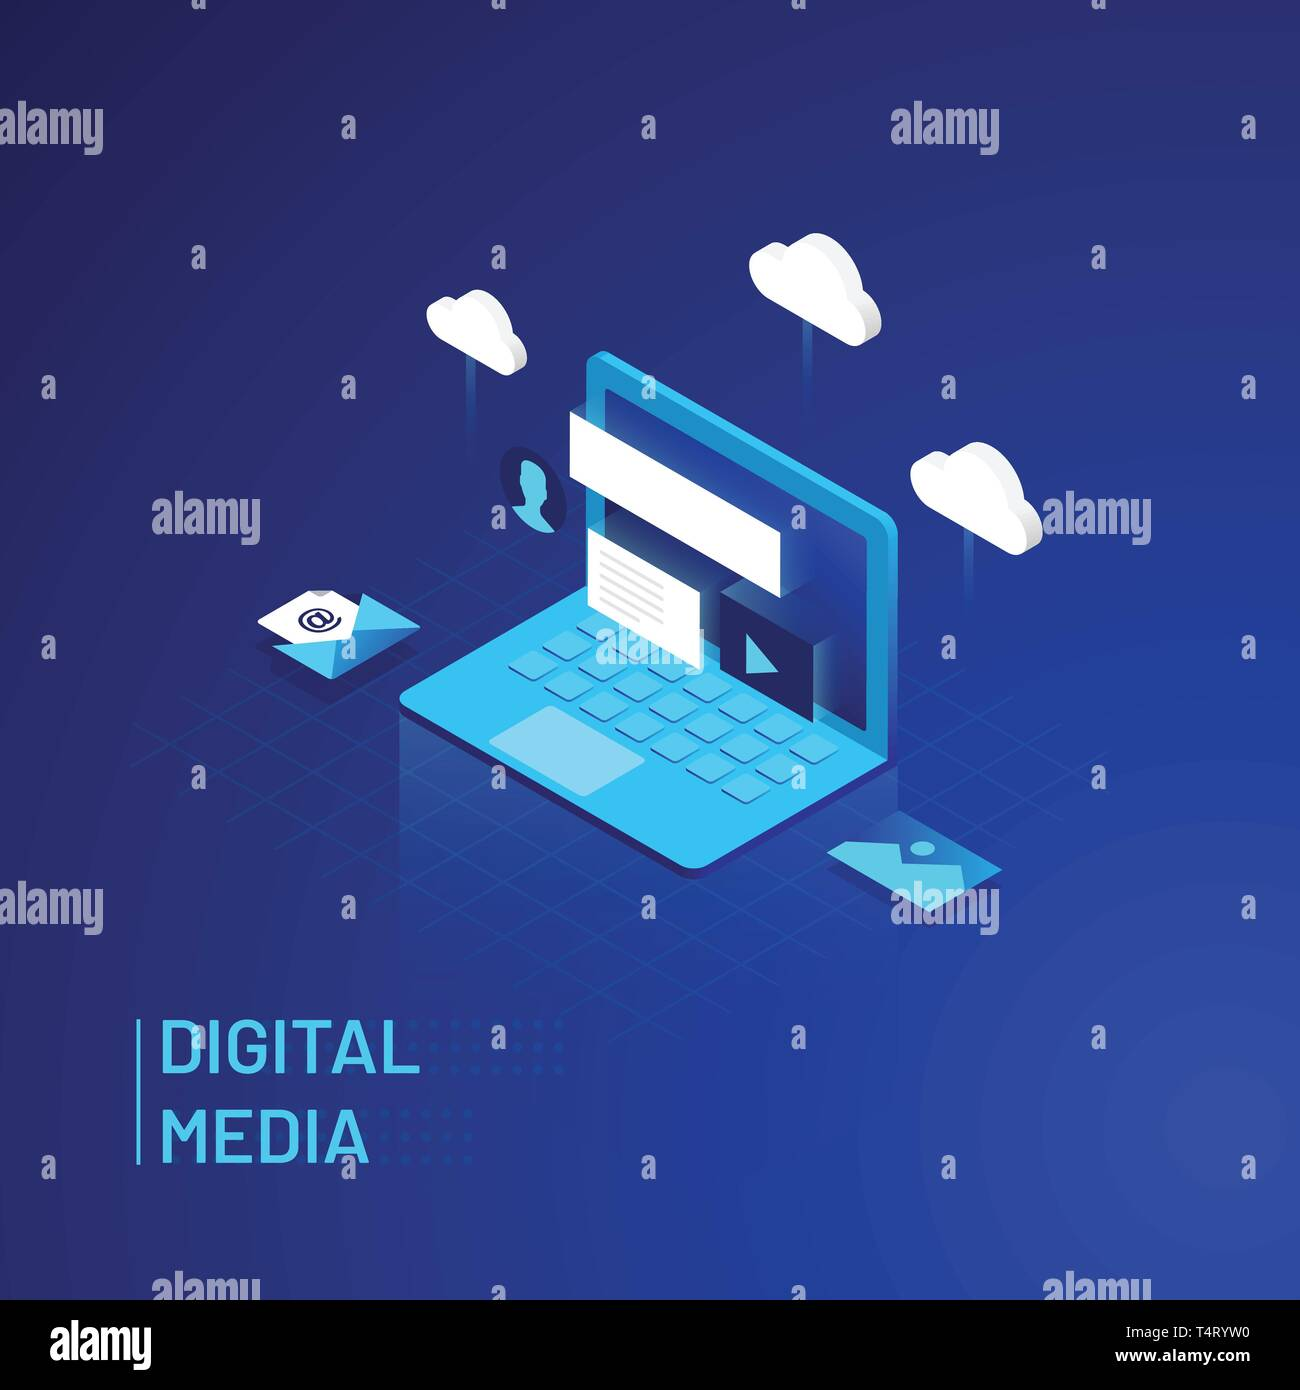 Digital Media - Isometric Vector Illustration - Stock Image